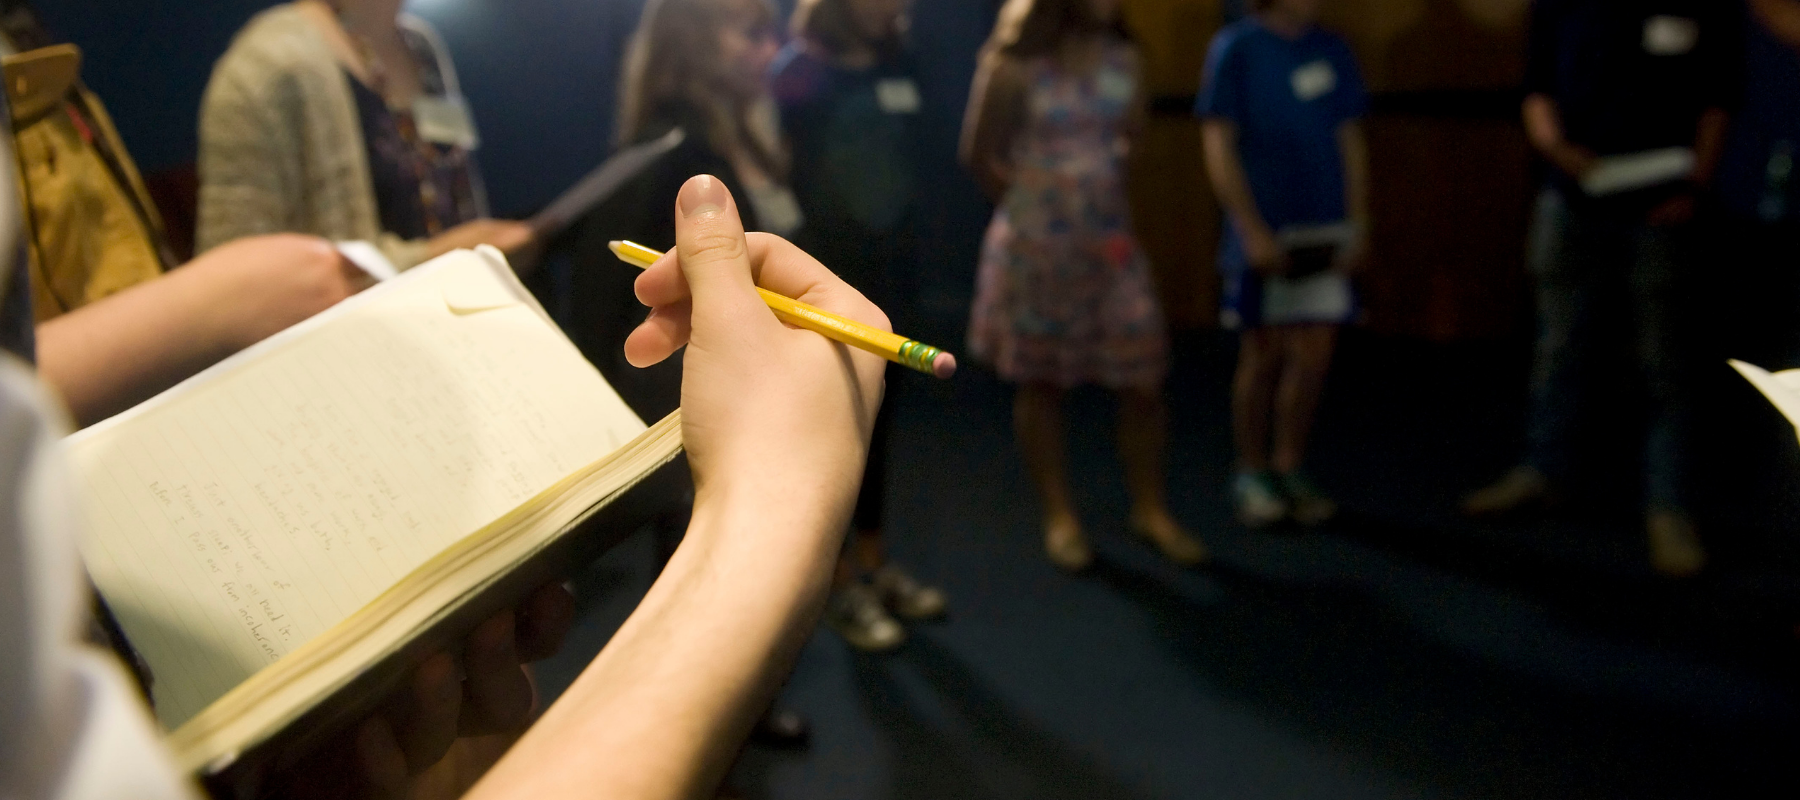 A close-up of someone's notebook as they hold a pencil over it with one hand.